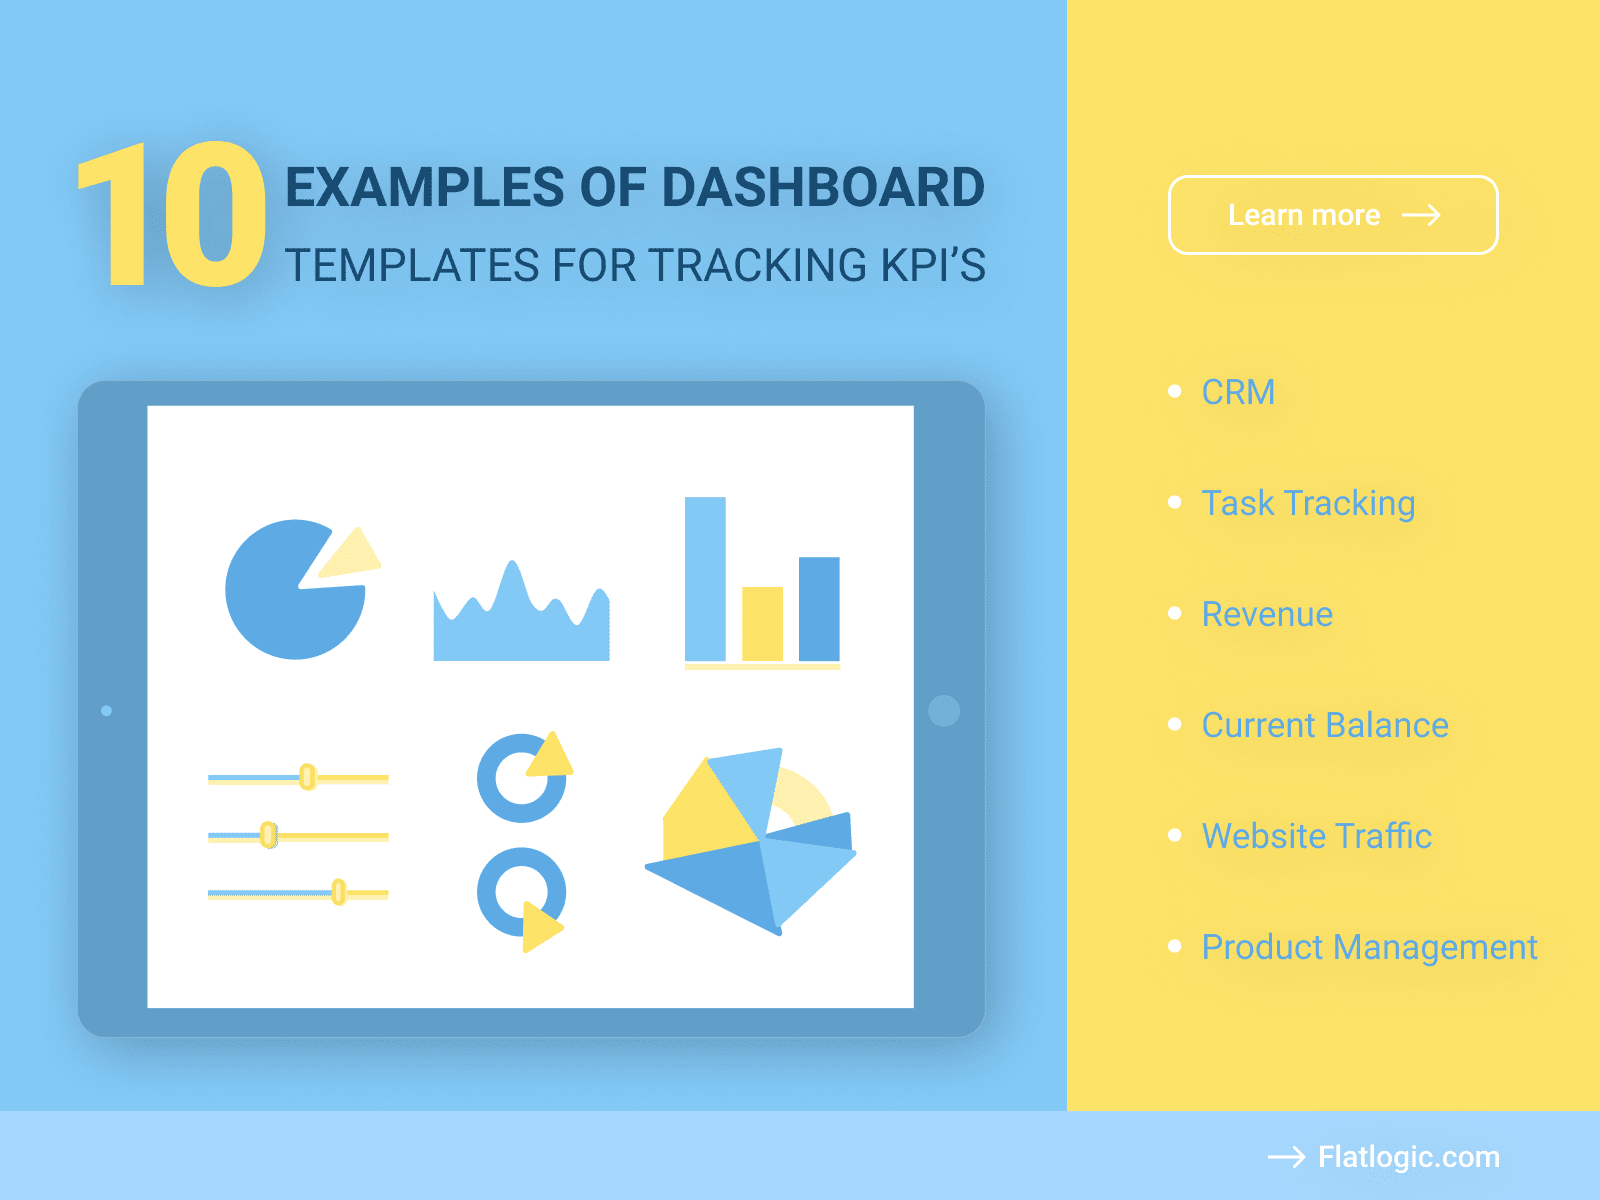 10+ Examples of Dashboard Templates for Tracking KPI's